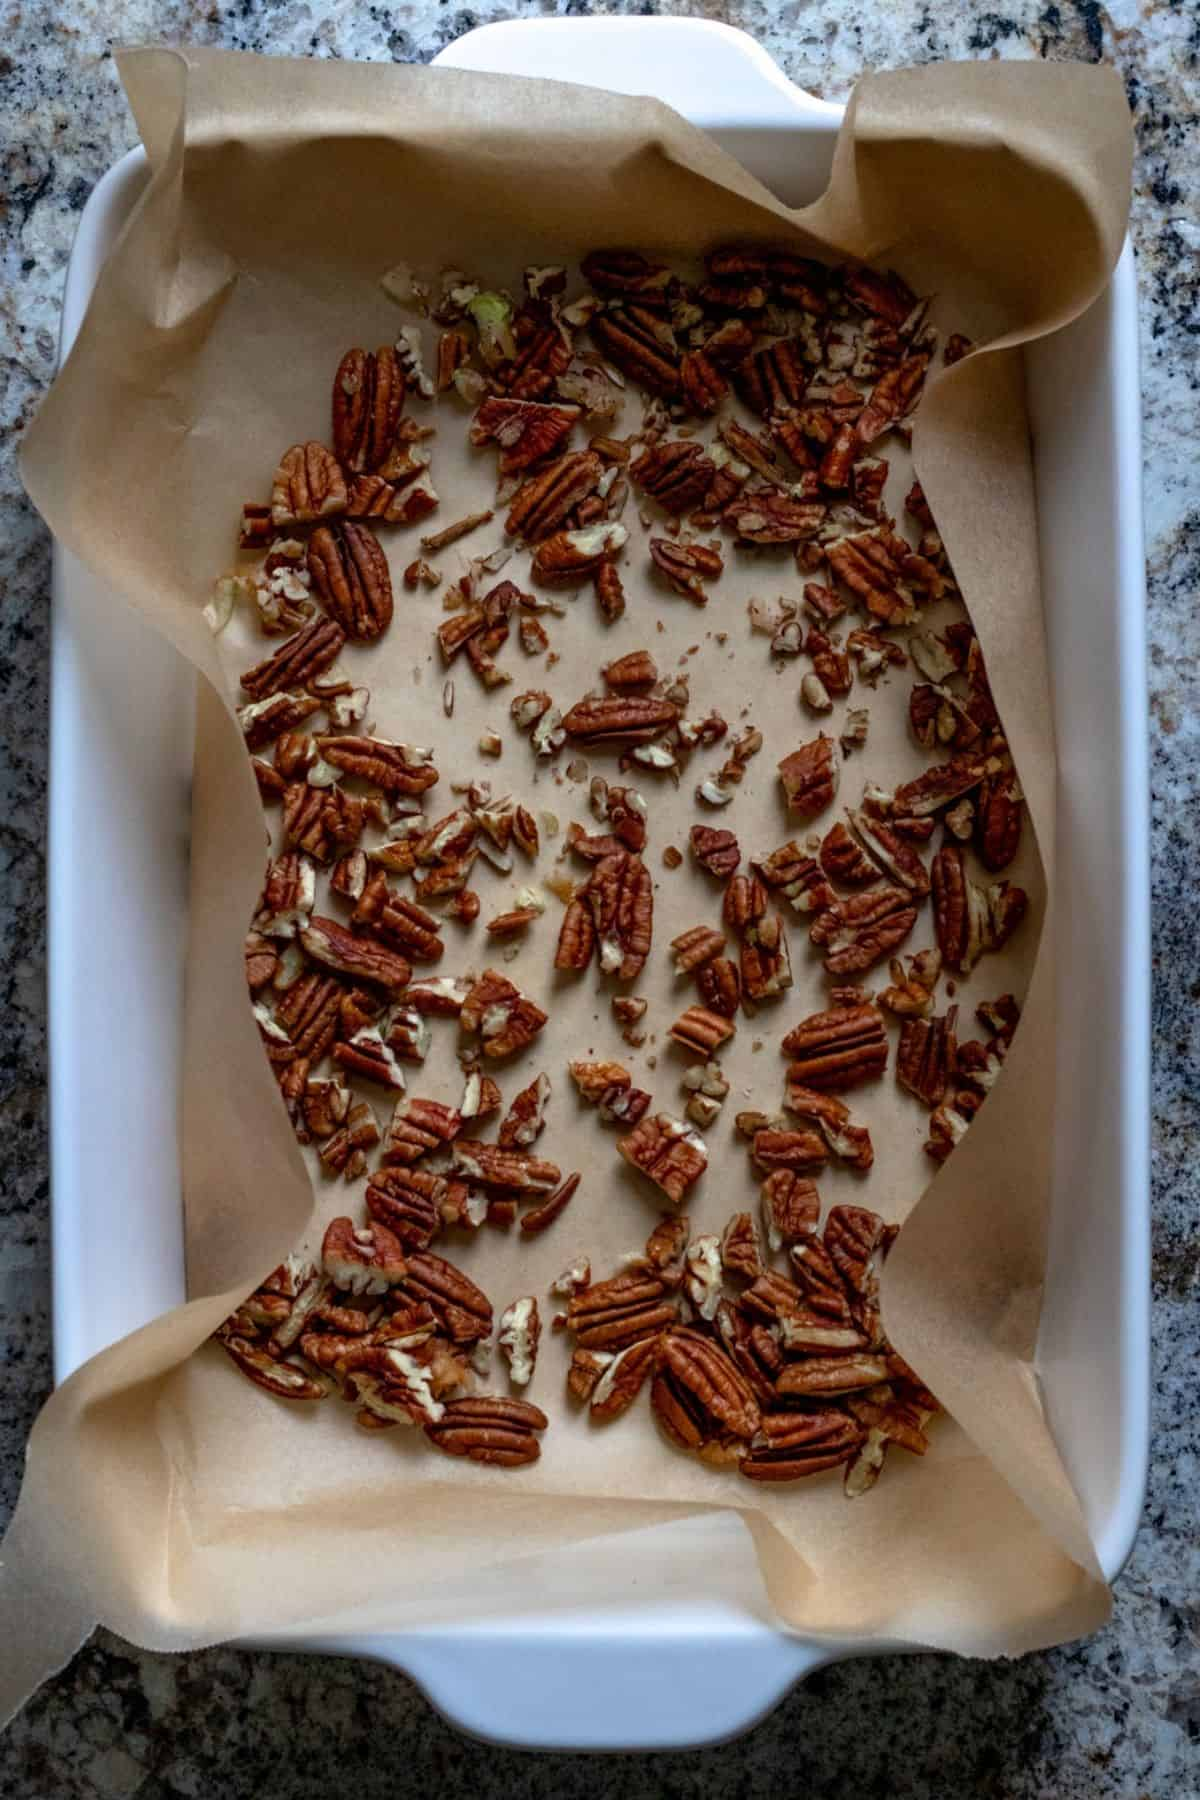 Chopped pecans in the bottom of a parchment lined baking dish.